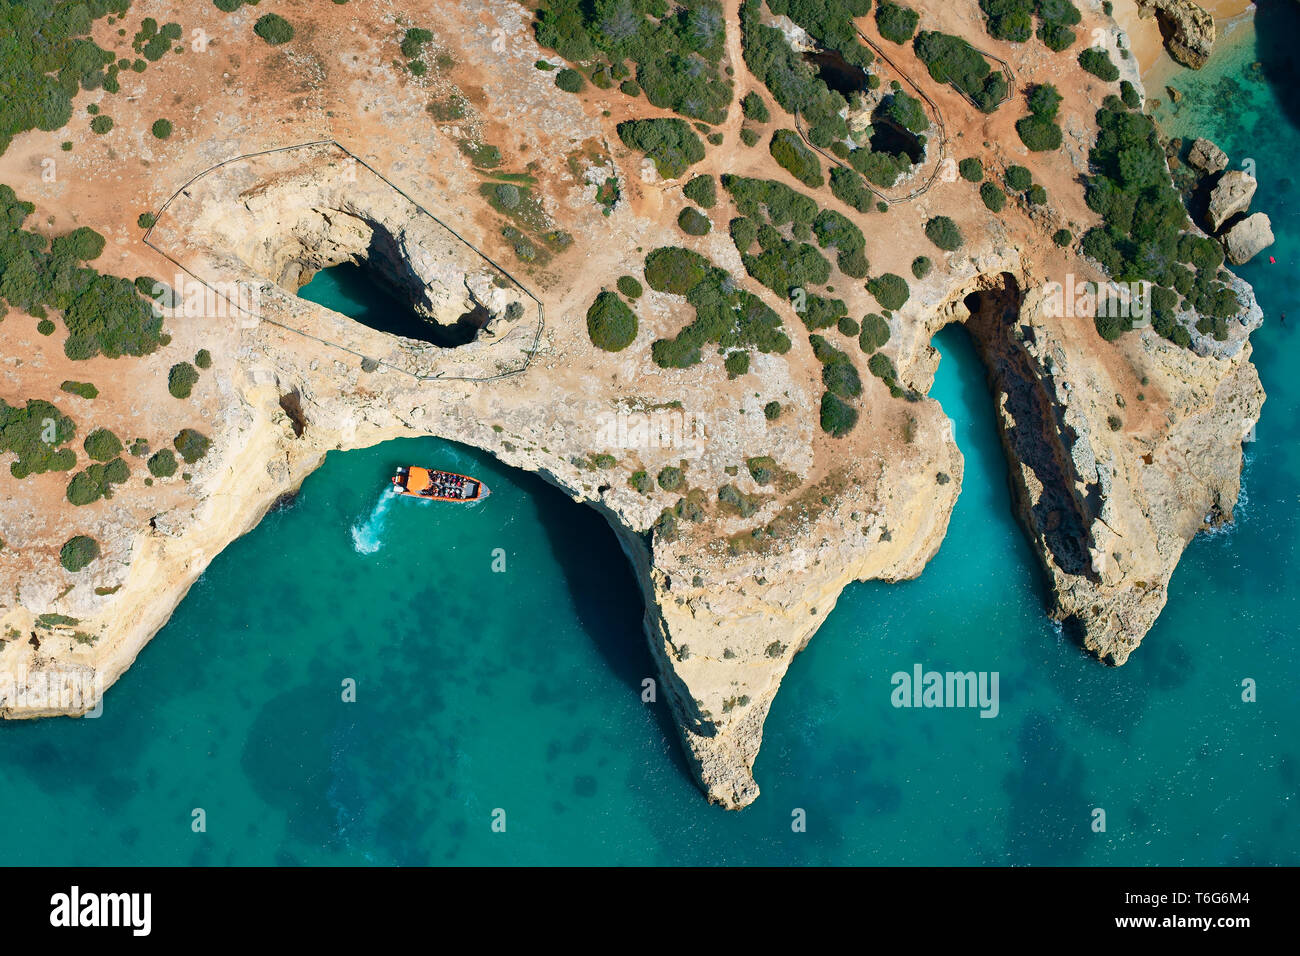 SIGHTSEEING BOAT APPROACHING A SEA CAVE / SINKHOLE ON A ROCKY SHORELINE NEAR ALBANDEIRA BEACH (aerial view). Lagoa, Algarve, Portugal. - Stock Image